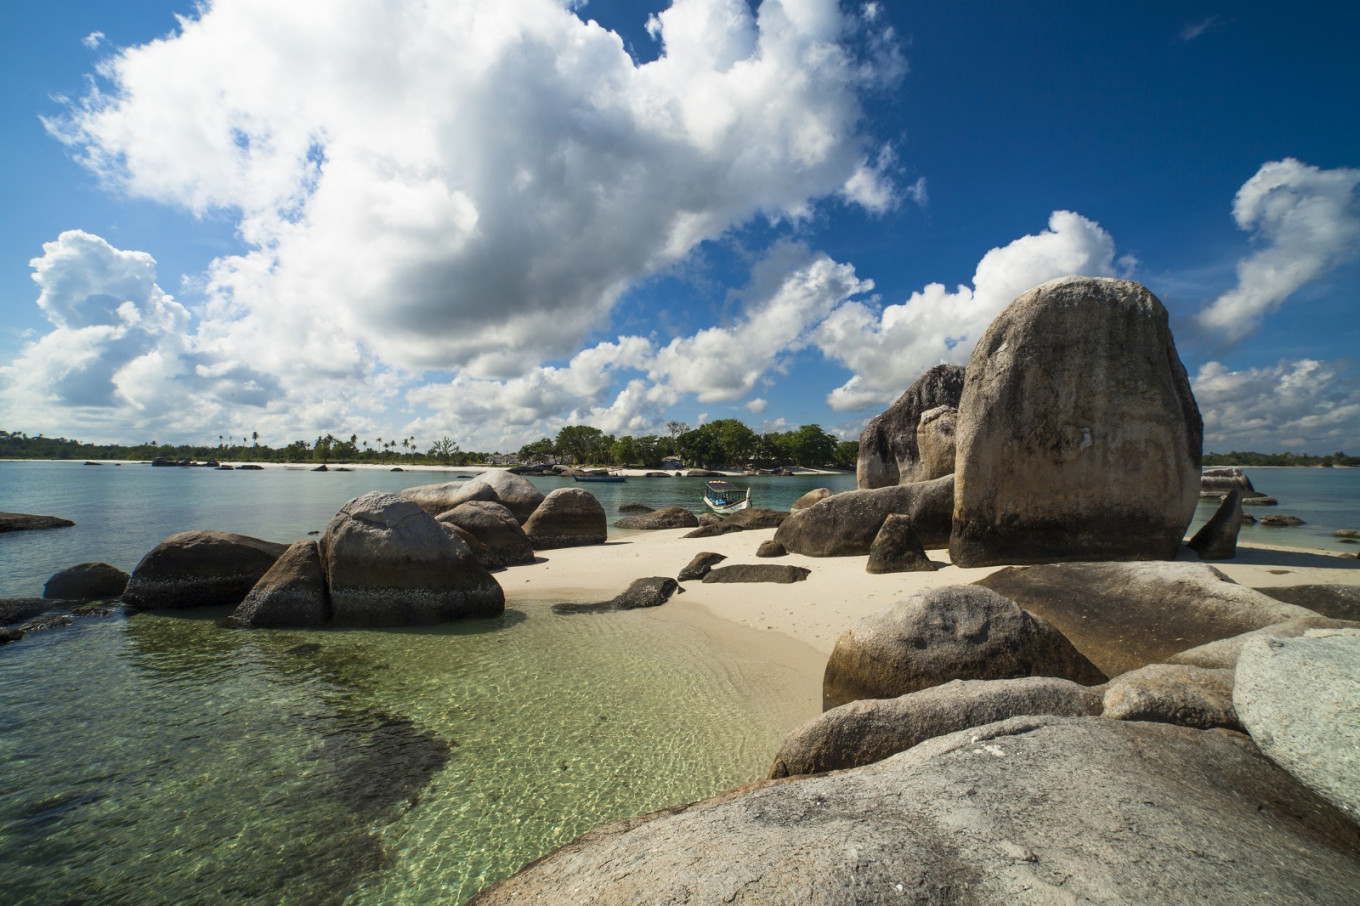 Bangka Belitung Rock Park aims for UNESCO recognition